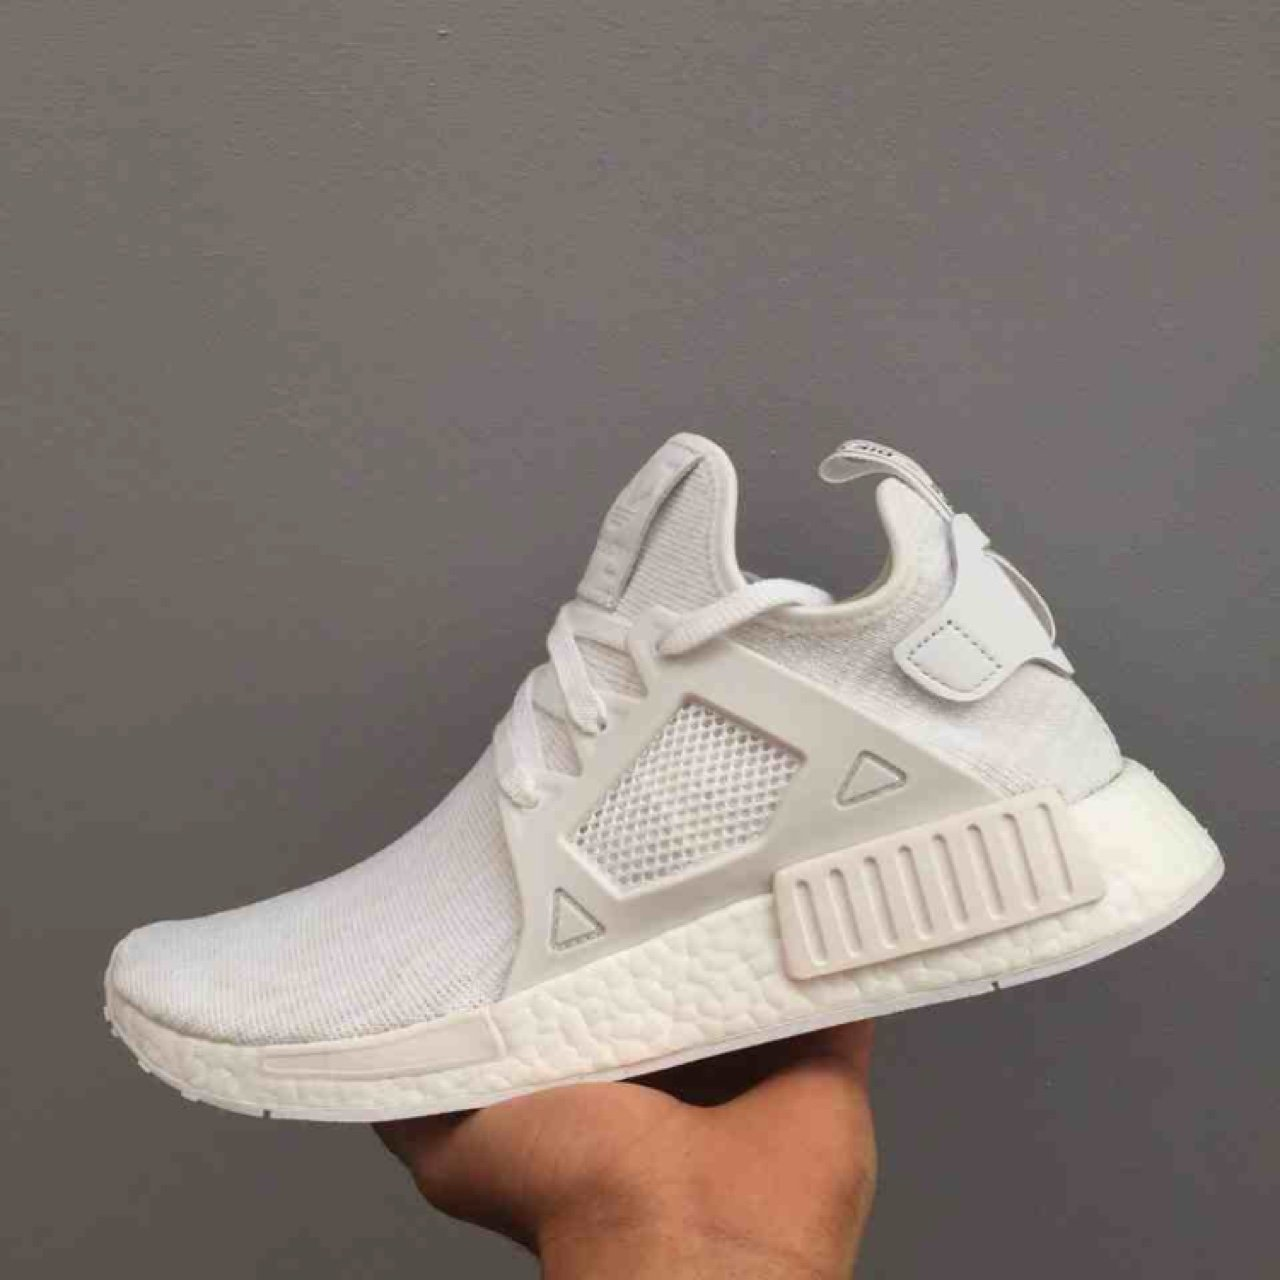 47c3fc2f7 Adidas NMD XR1 PK White. Brand new with box. UK 8.5 only. on - Depop